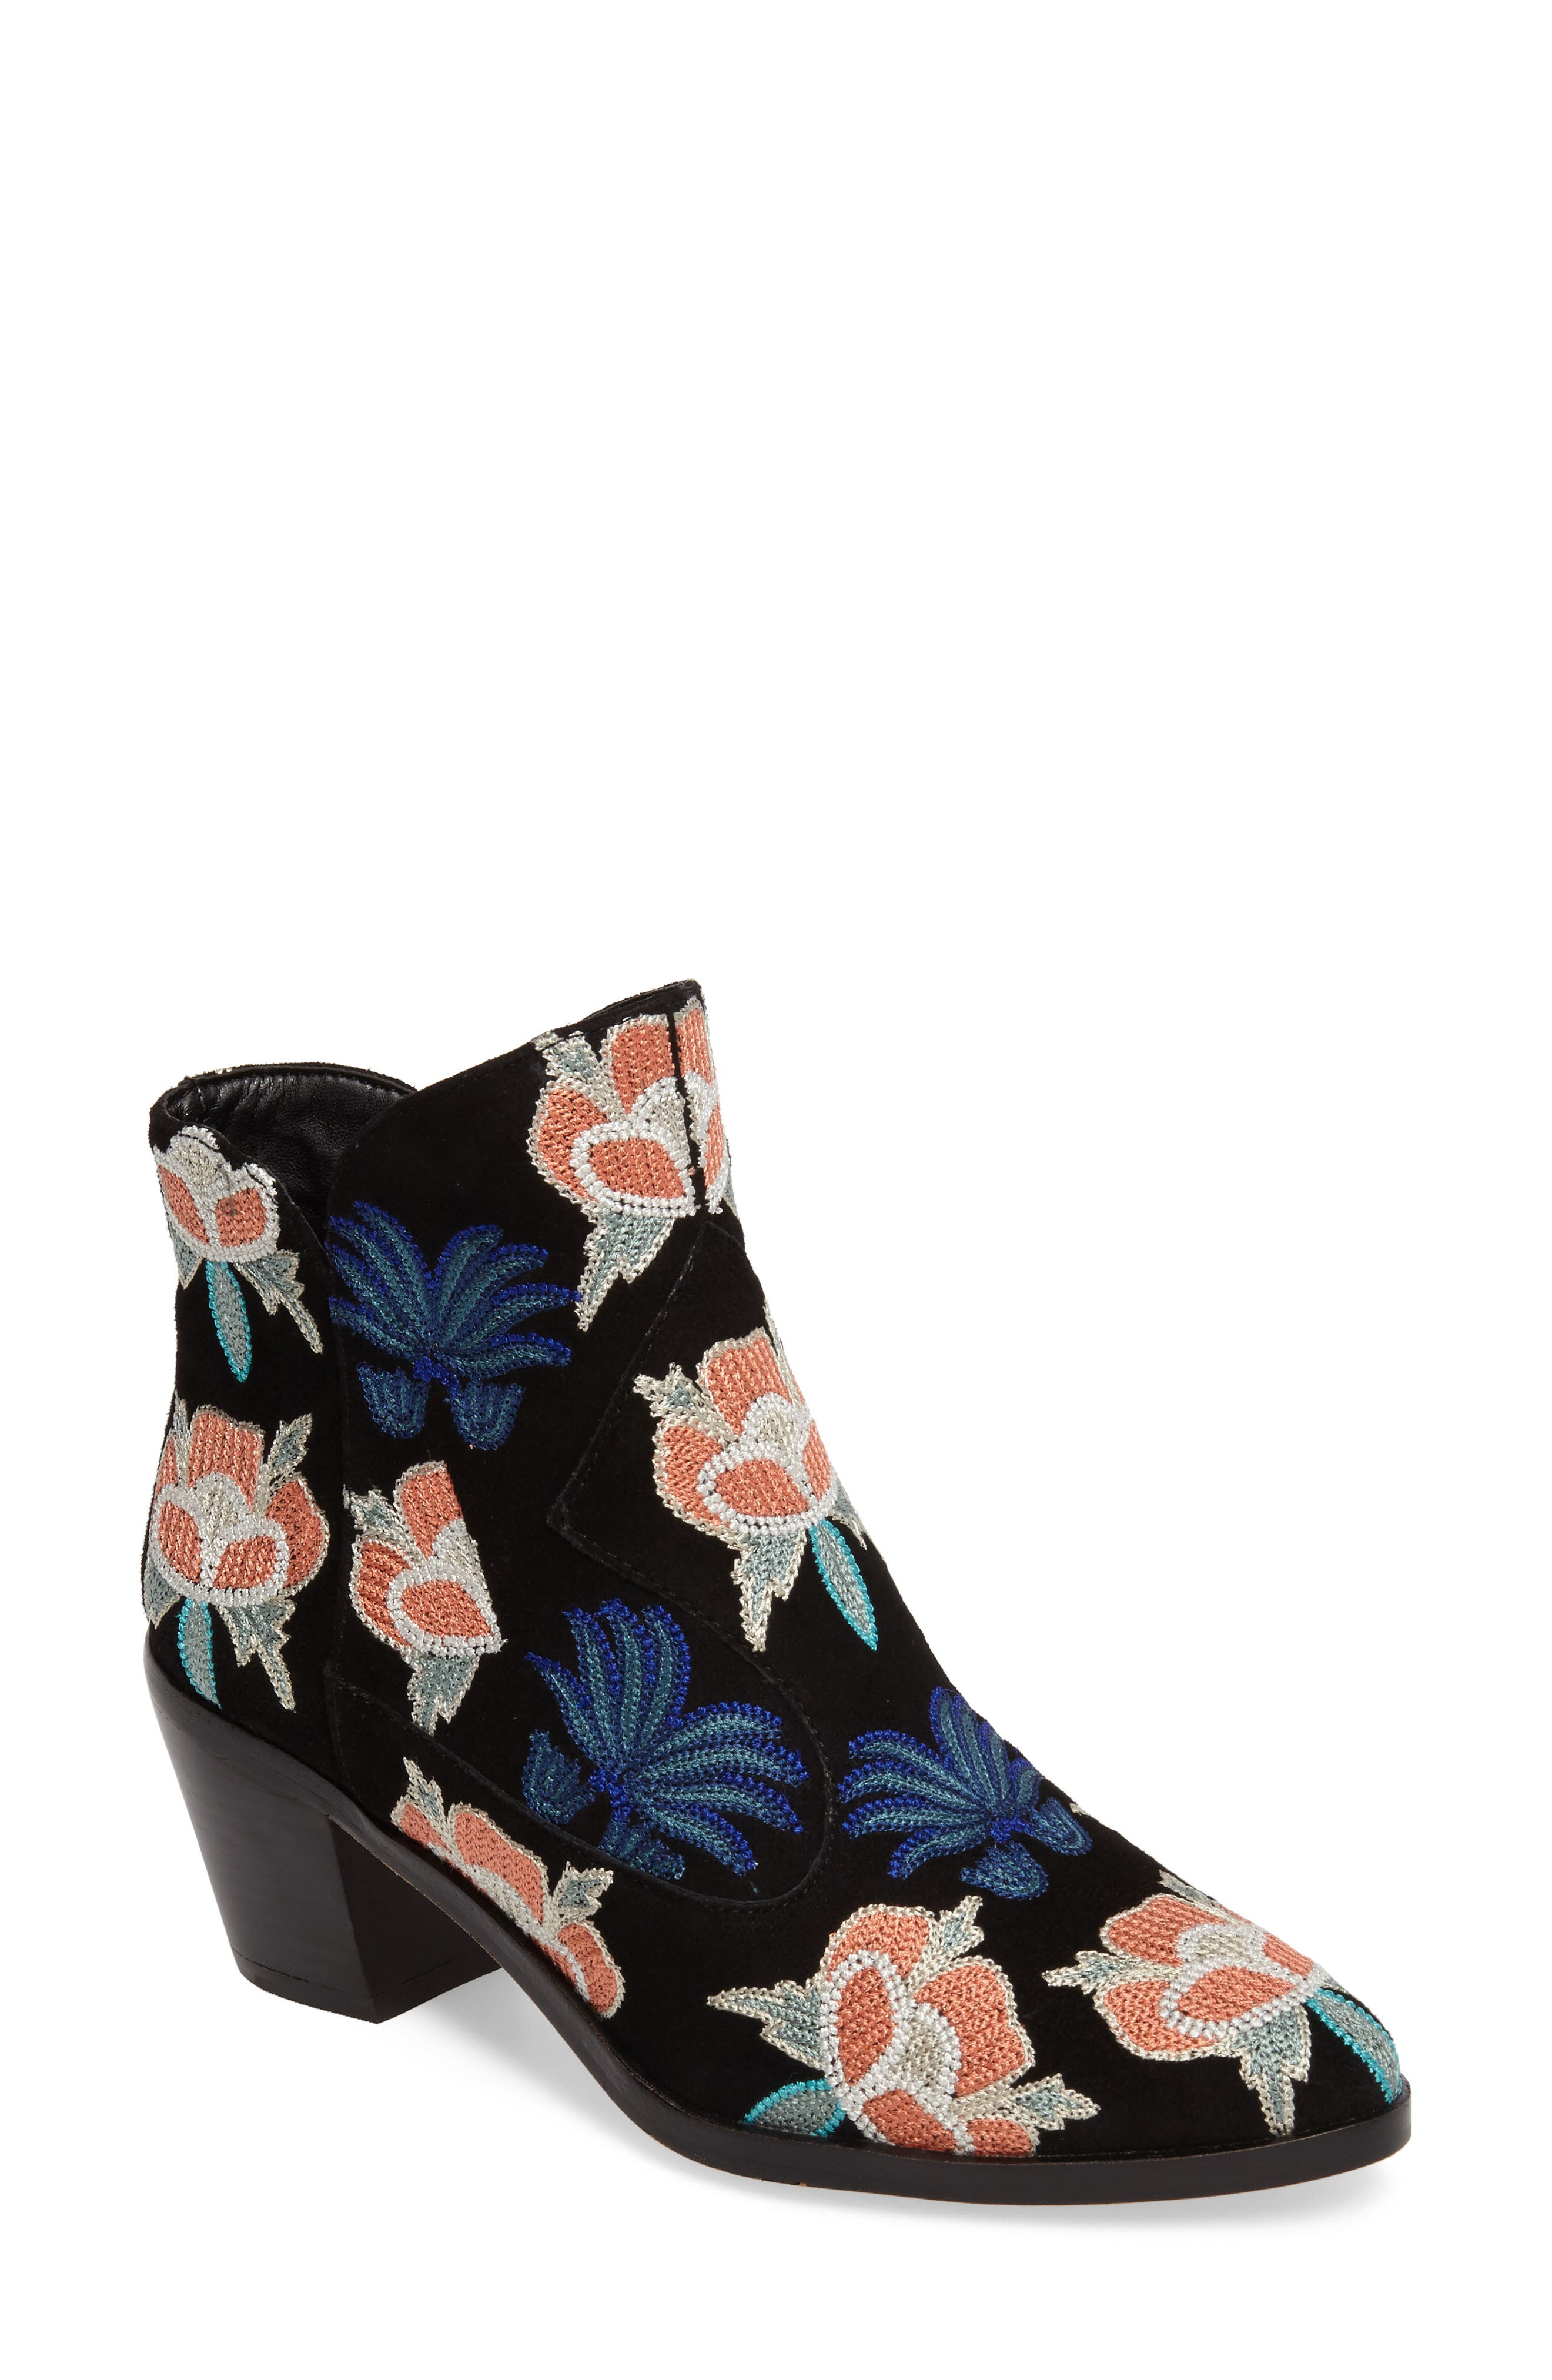 Main Image - Rebecca Minkoff Lulu Too Flower Embroidered Bootie (Women)